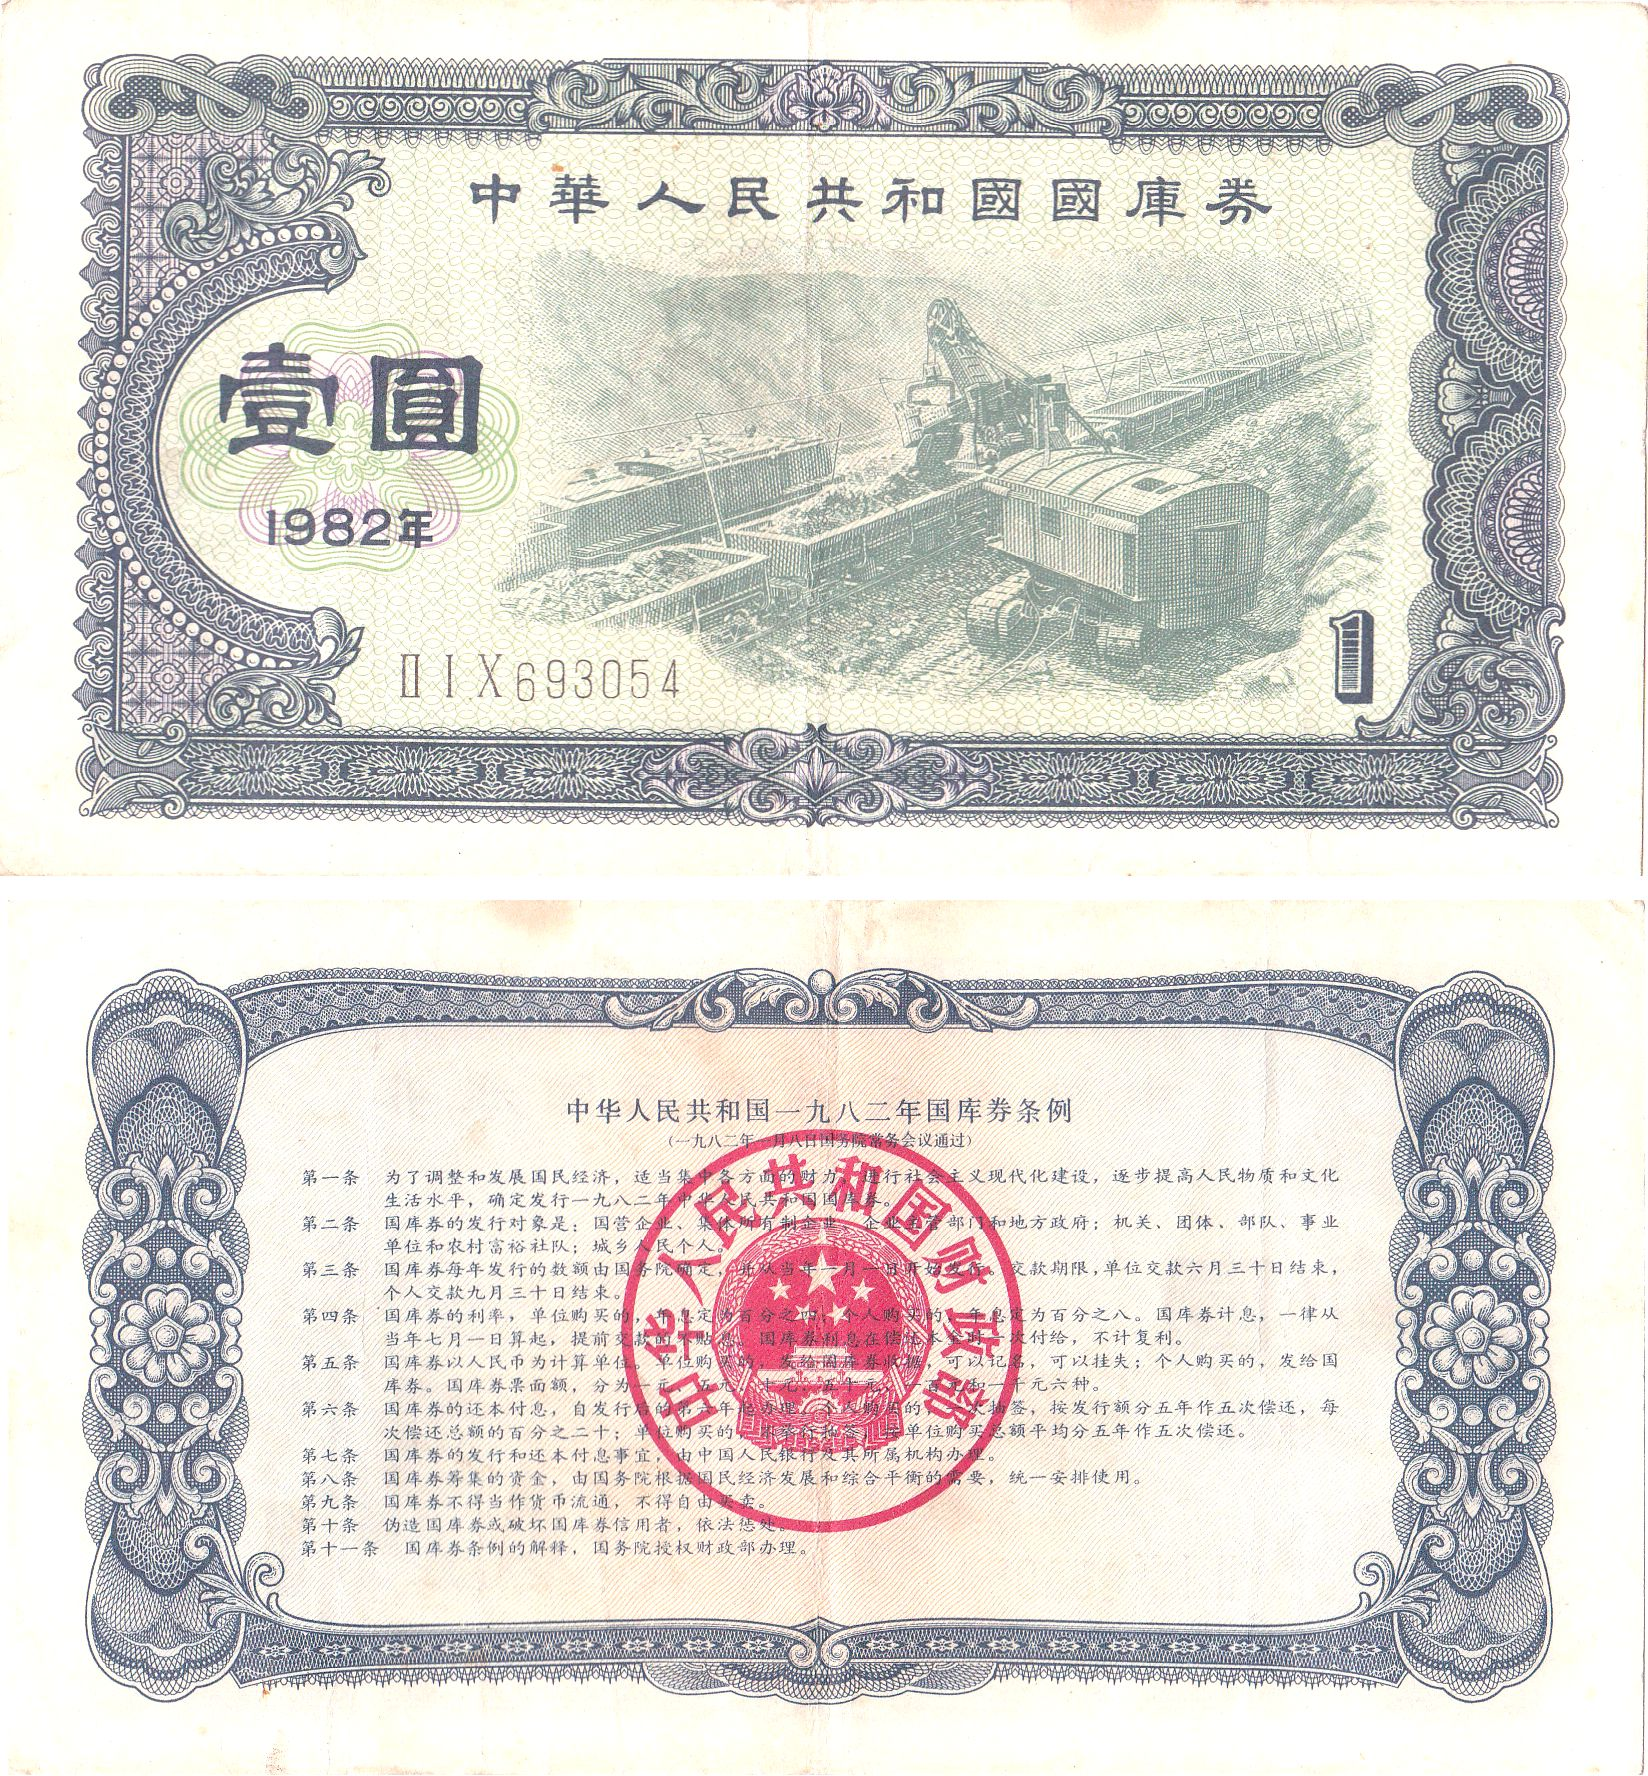 B7004, Treasury Bond of P.R.China, One Yuan (1 Dollar Loan) 1982